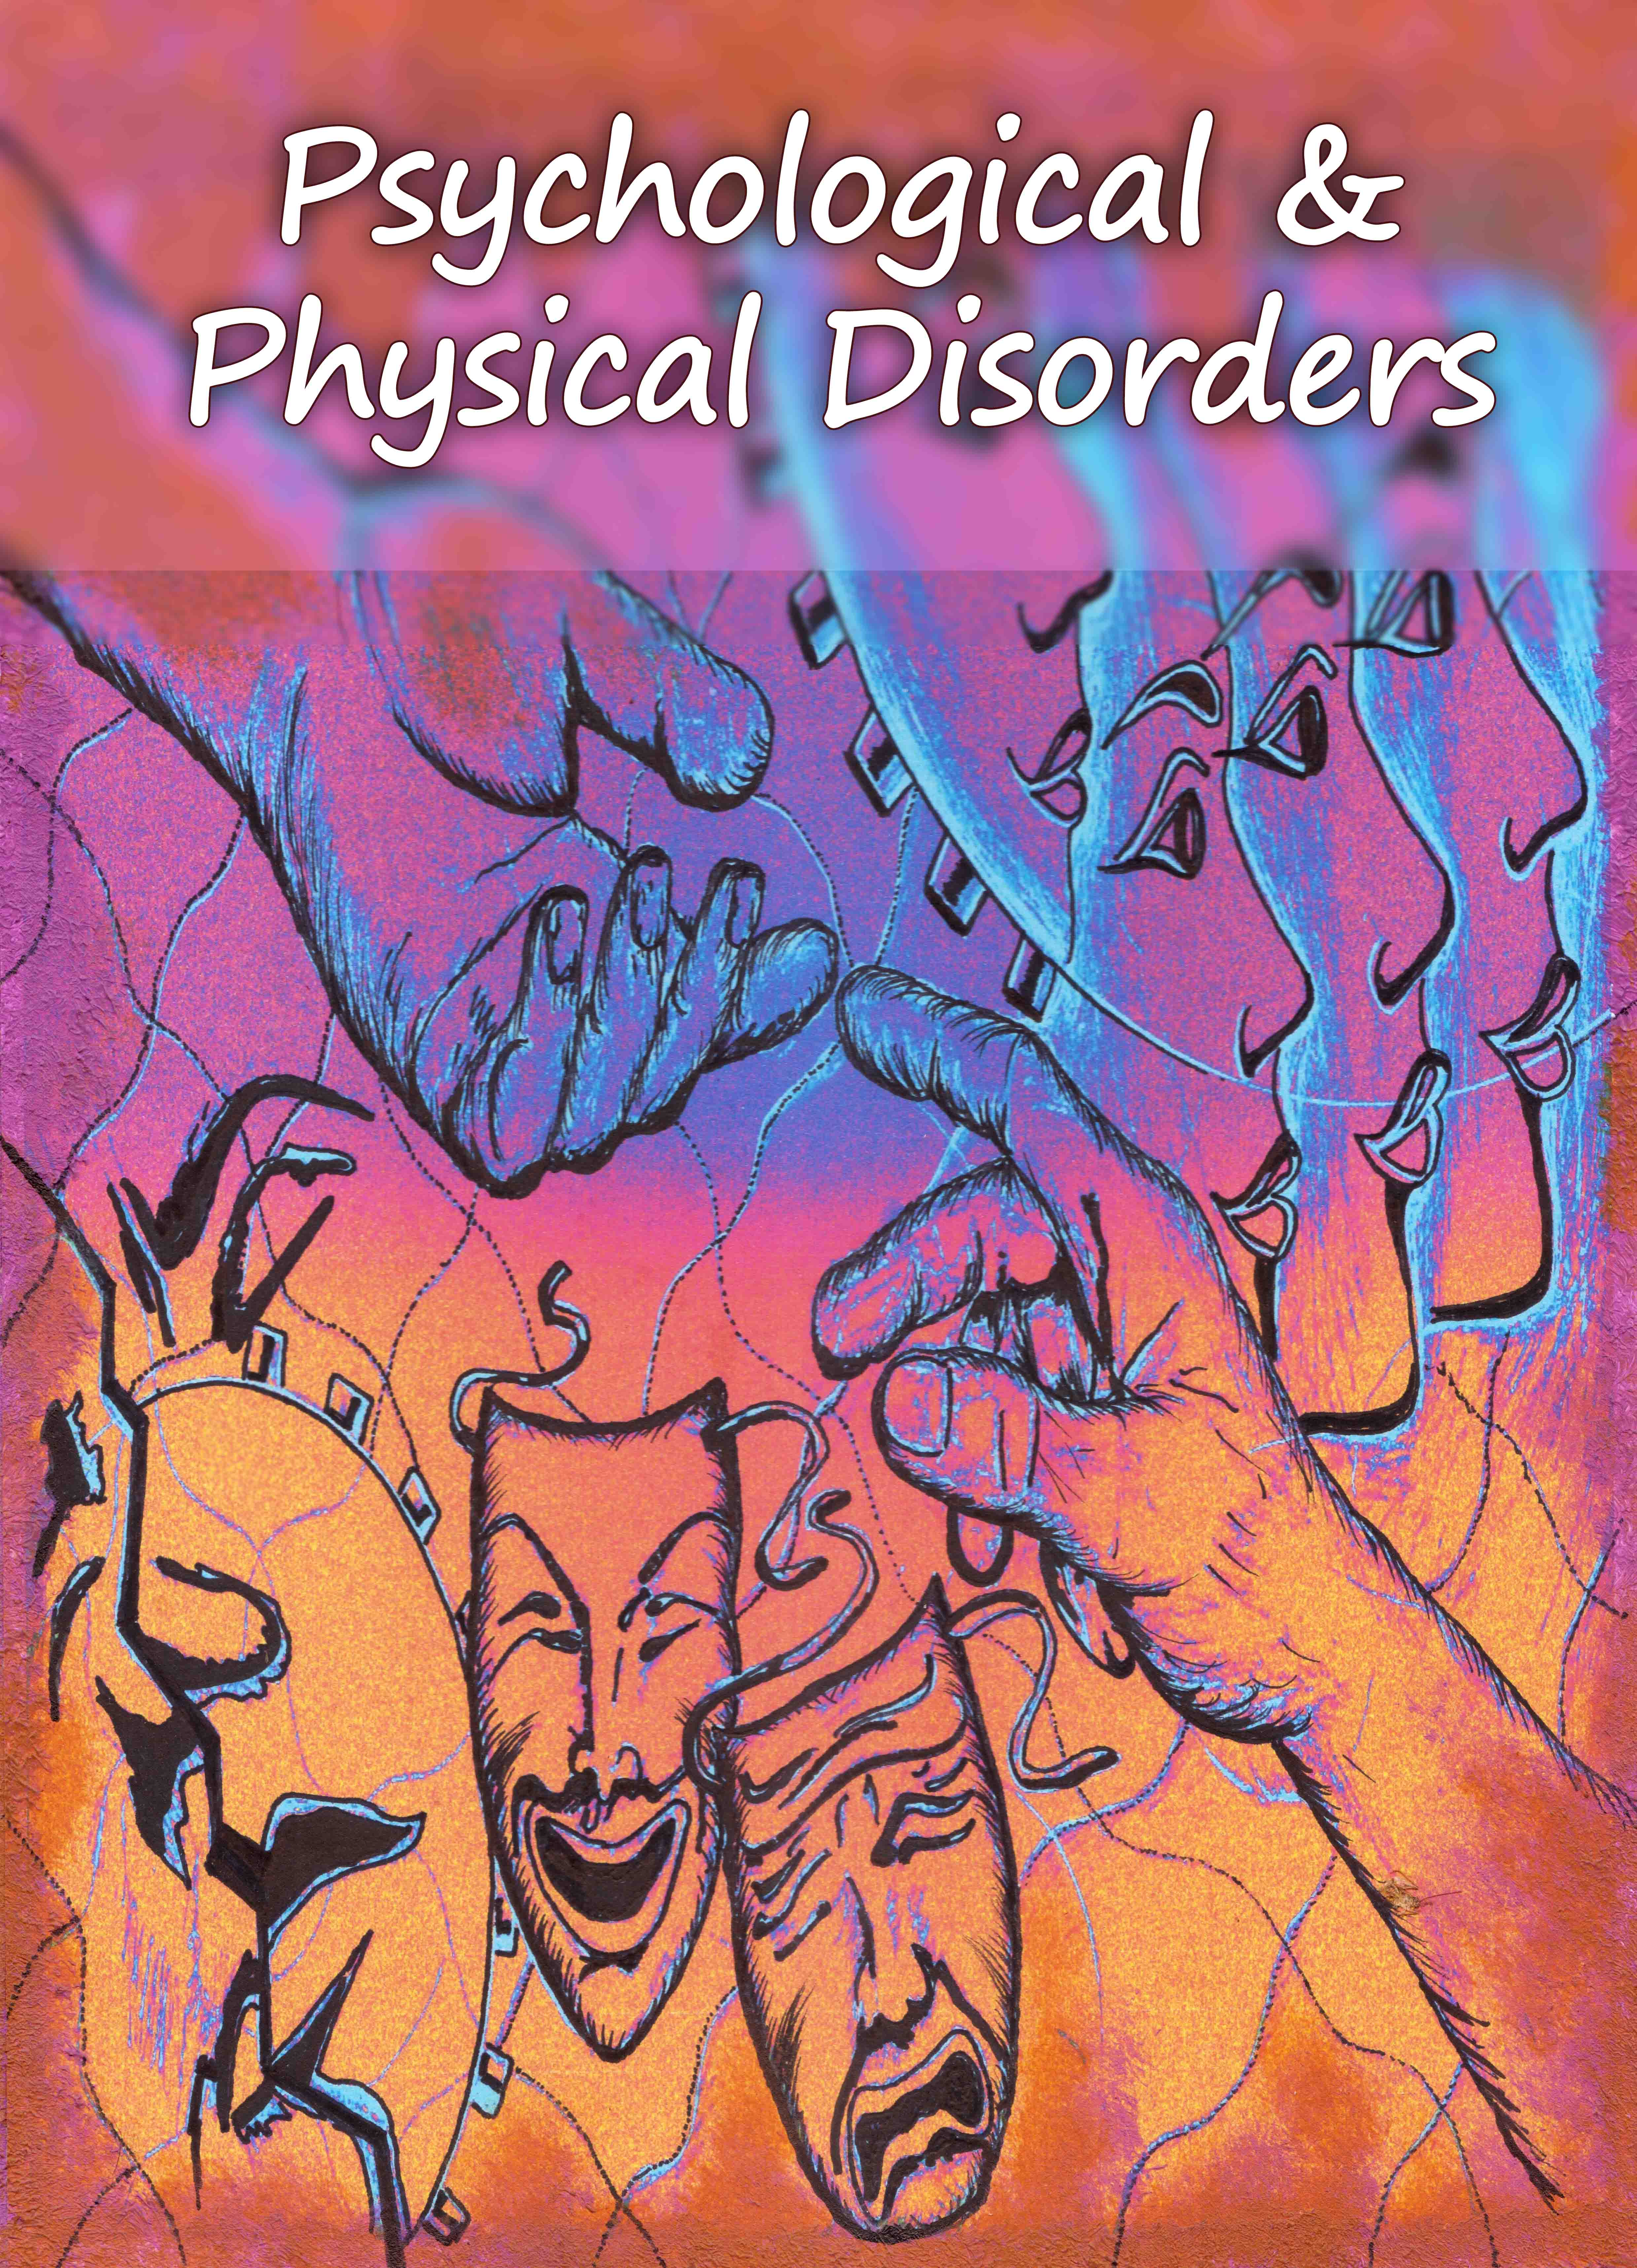 Psoriasis Practical Considerations - Psychological and Physical Disorders « EQAFE